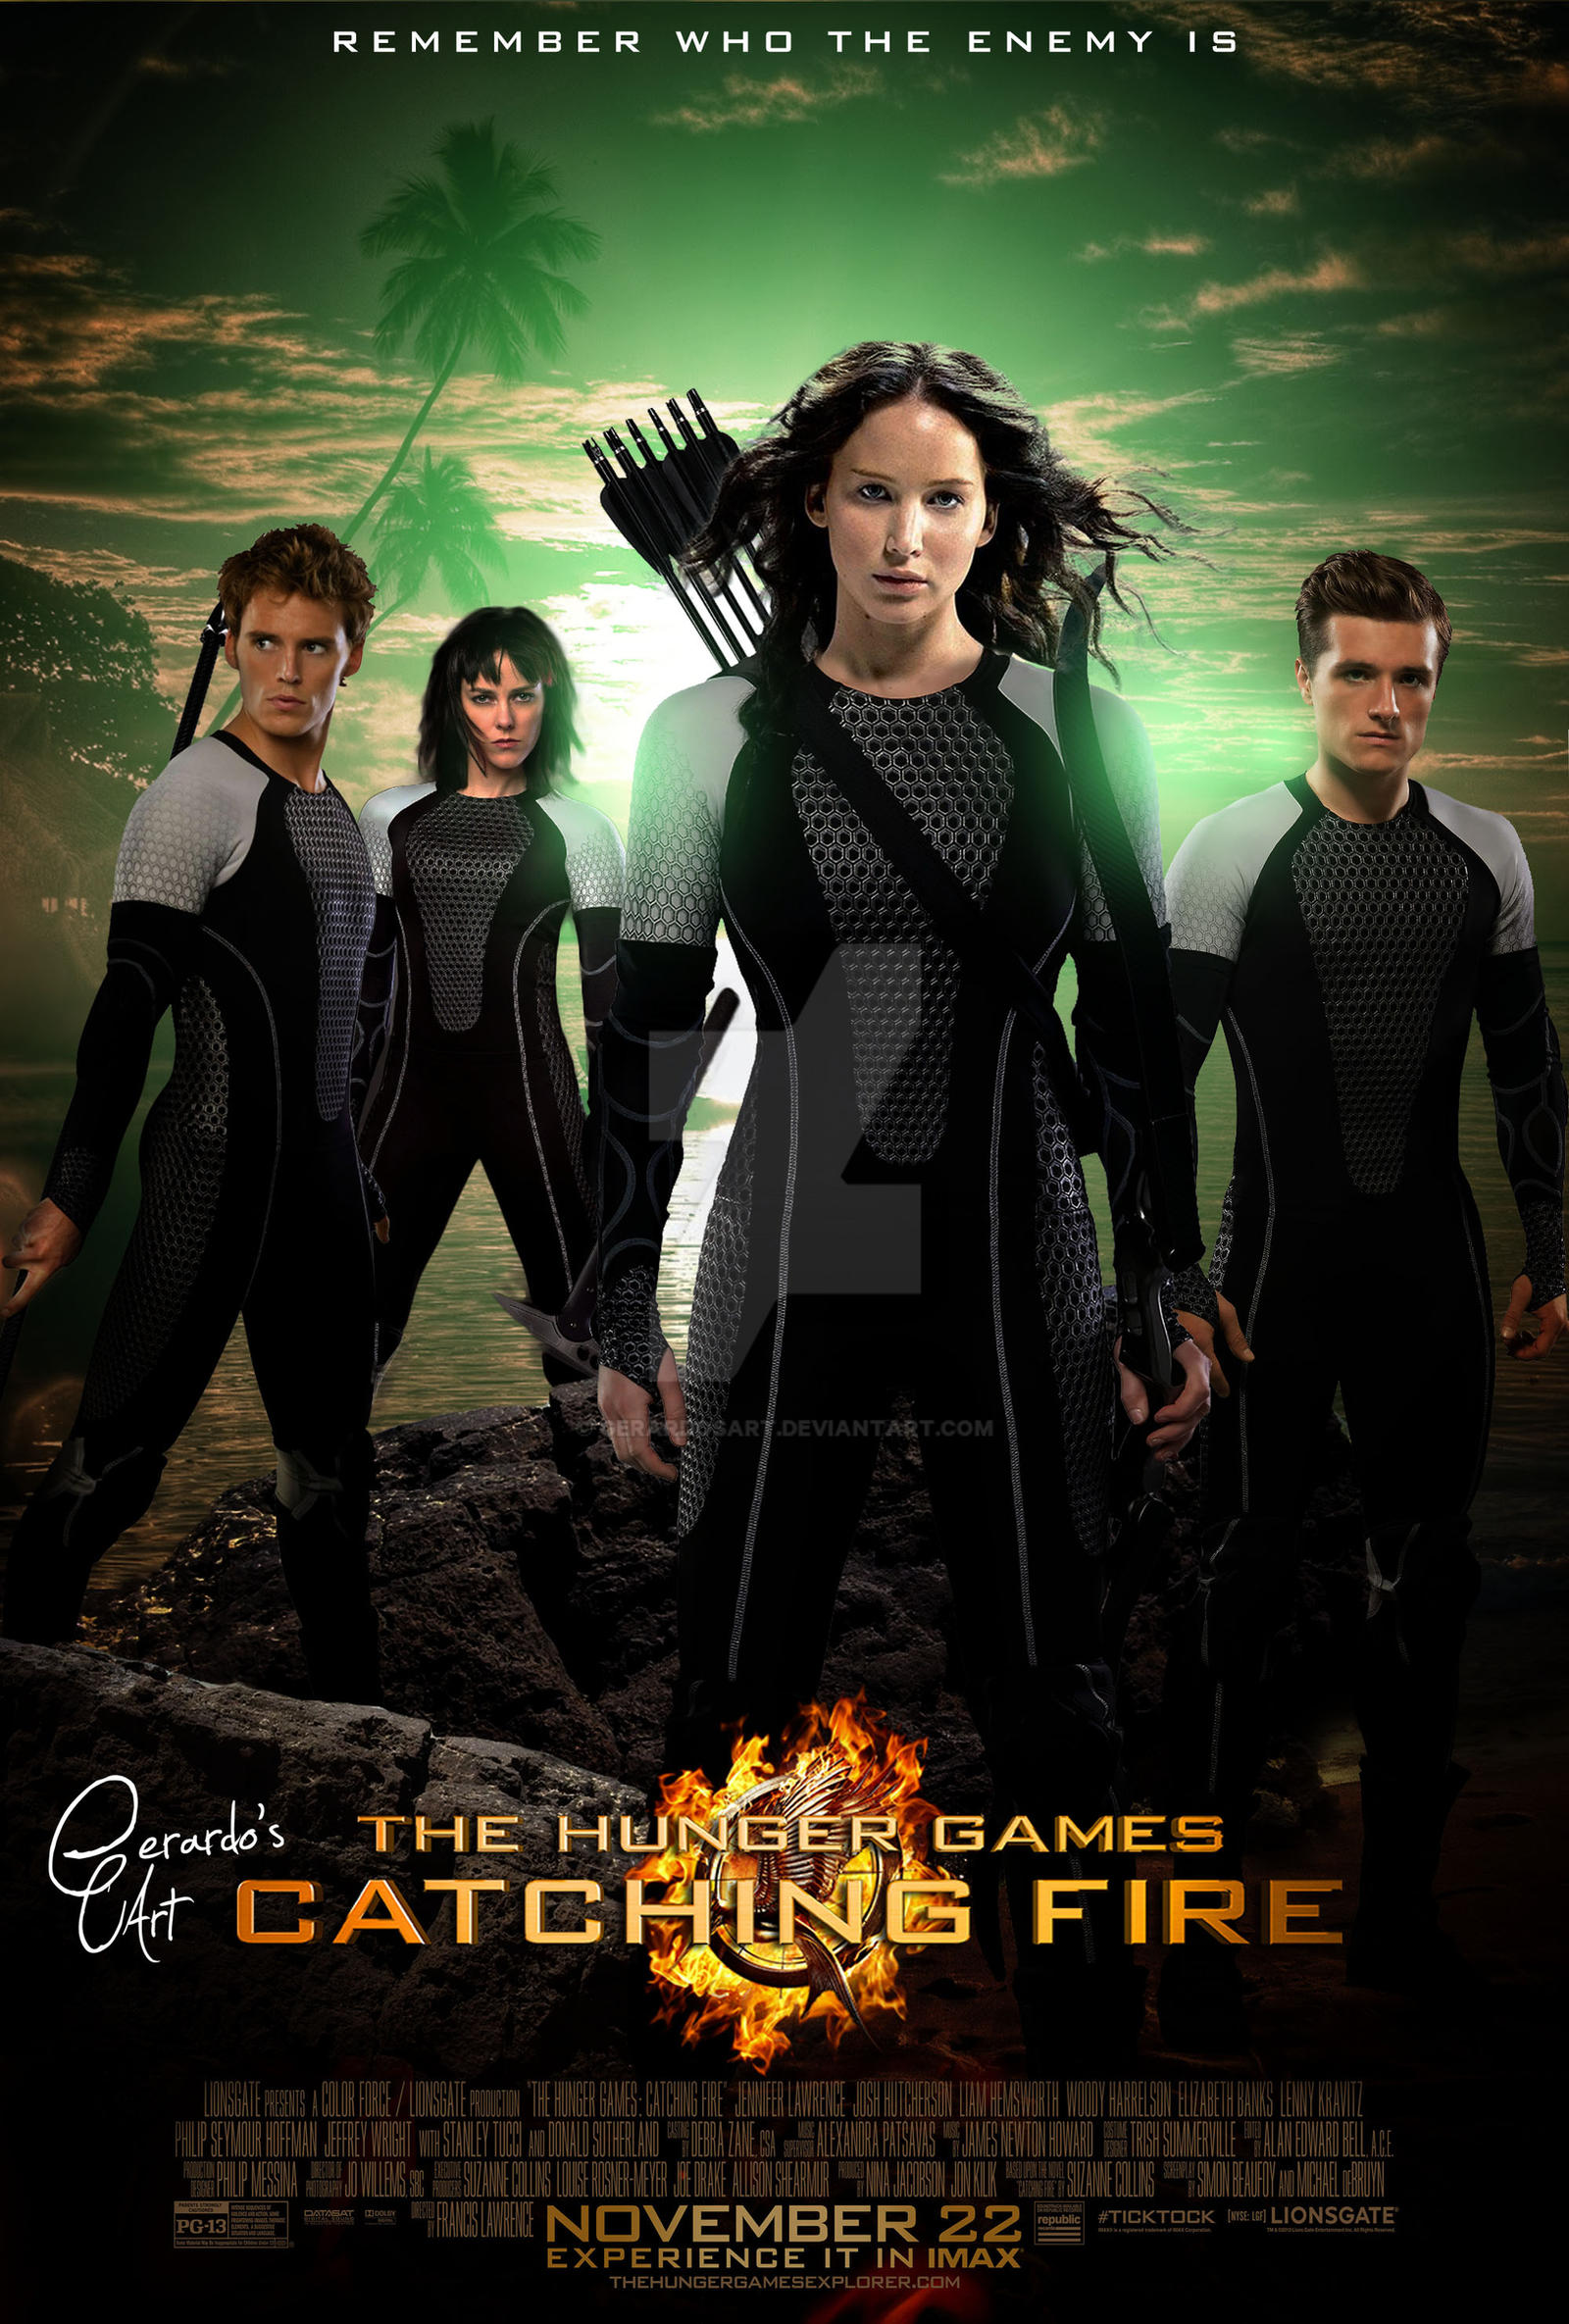 Hunger games 2 catching fire poster